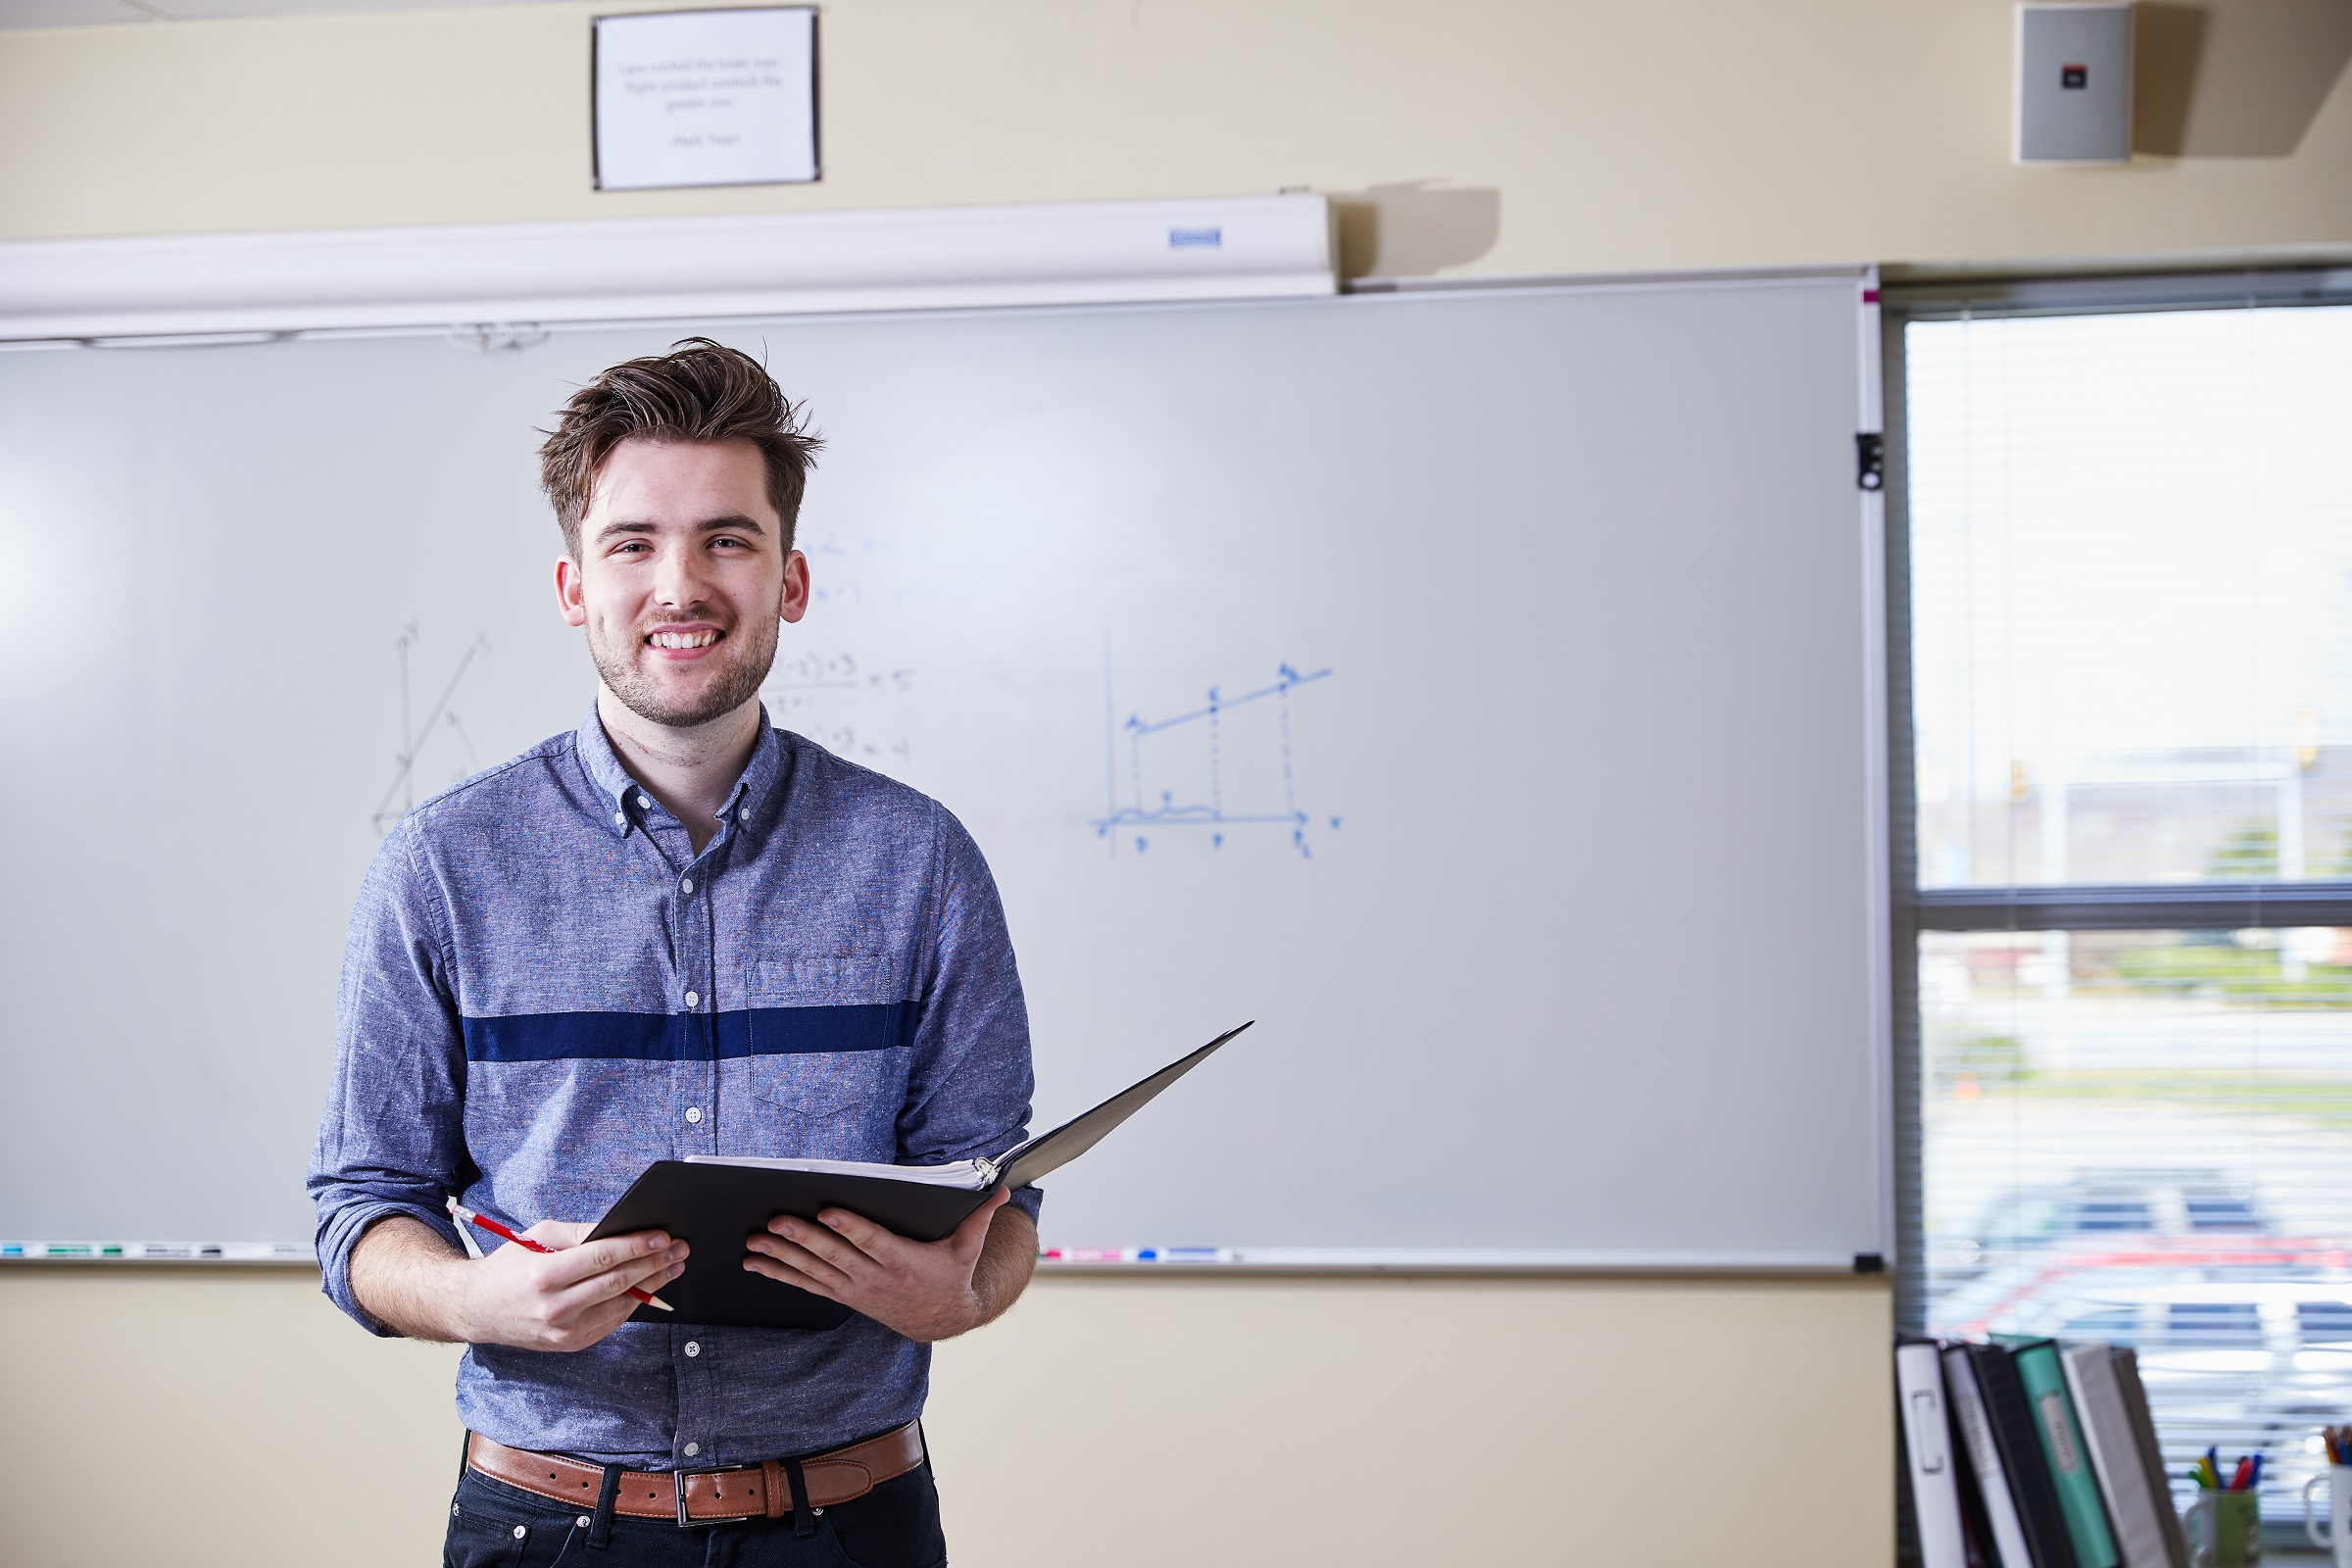 Bachelor Of Education In Elementary Education Middle Grades Mathematics Degree Online